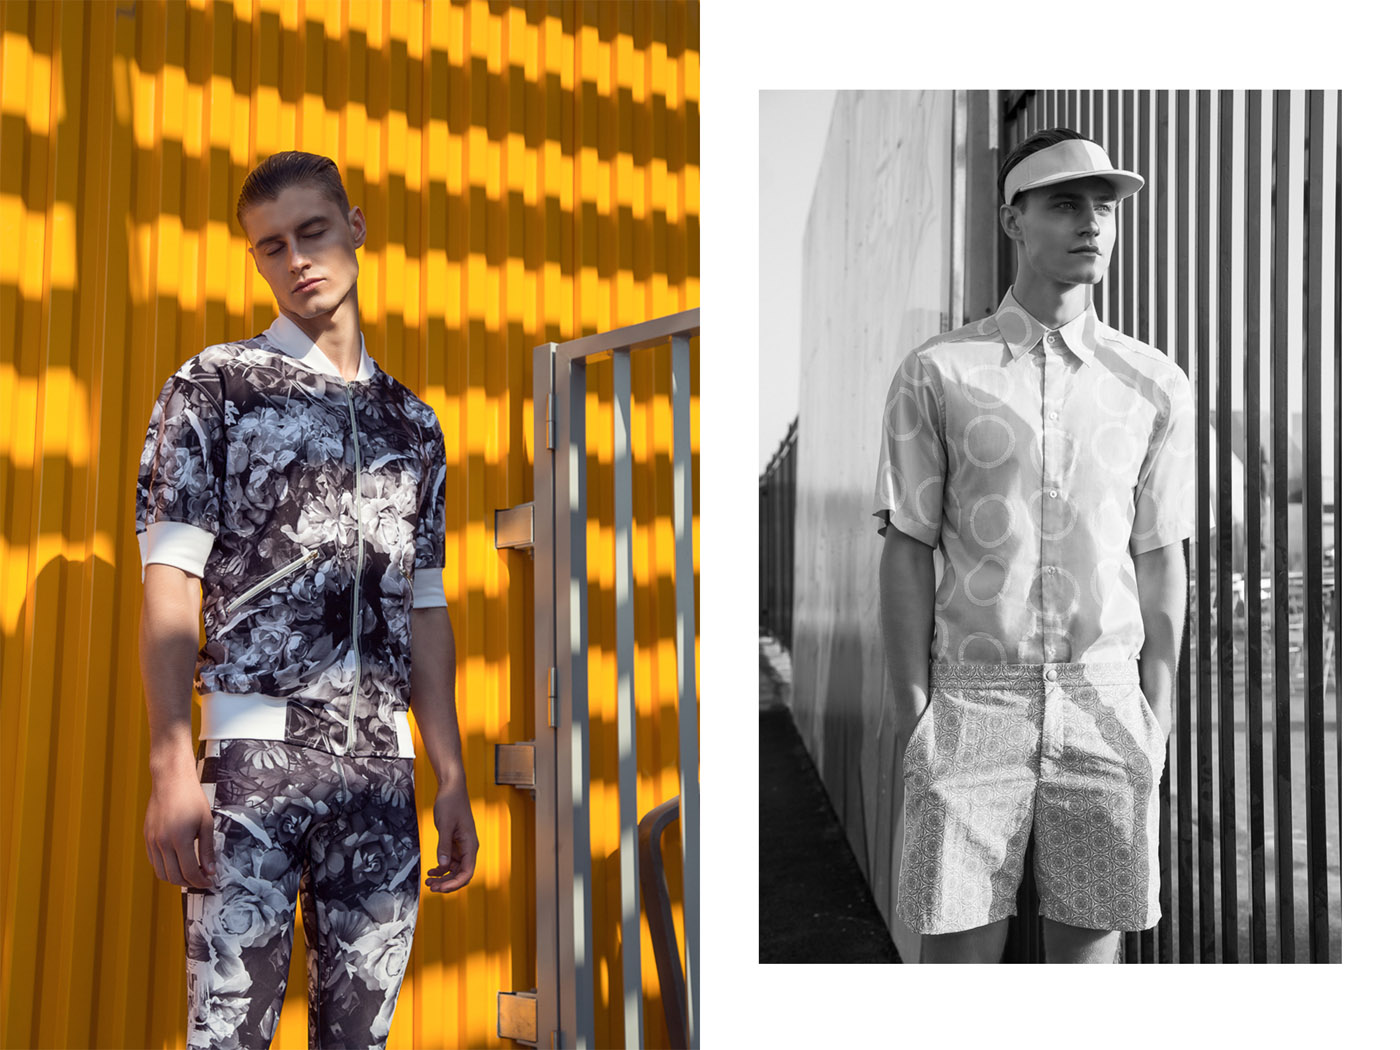 Konstantin by Ted Sun for CHASSEUR MAGAZINE